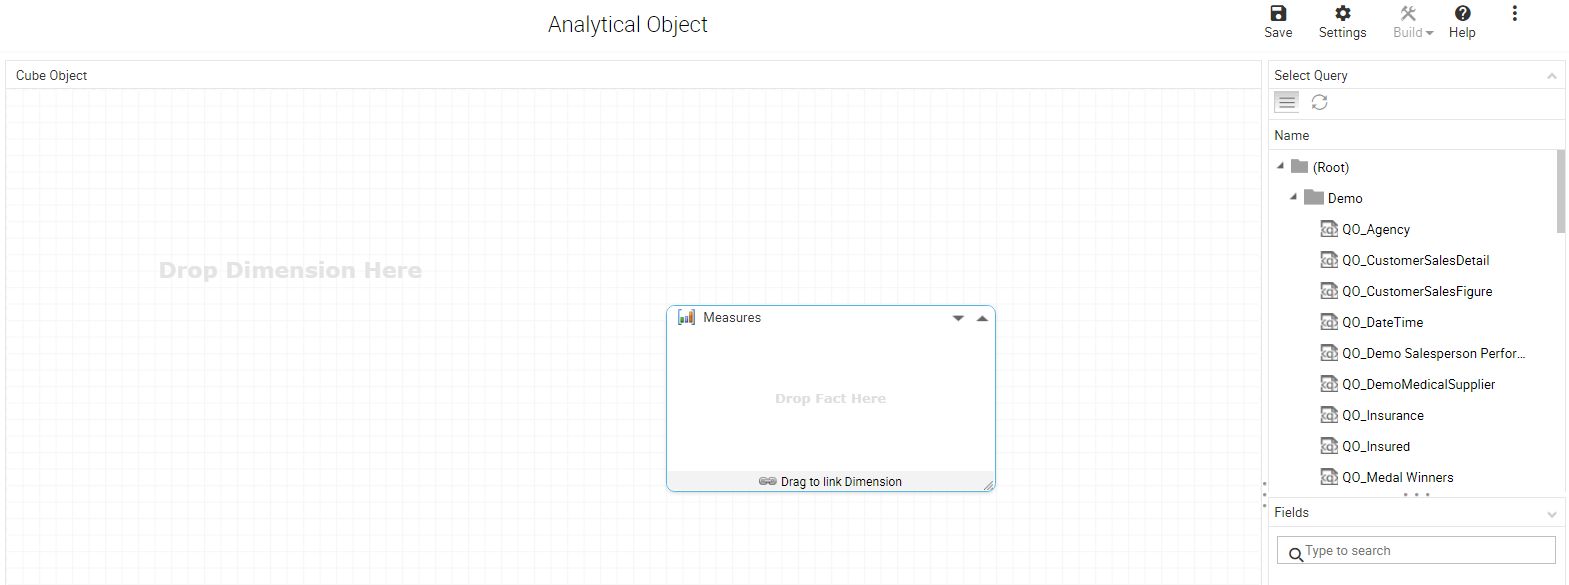 Analytical Object